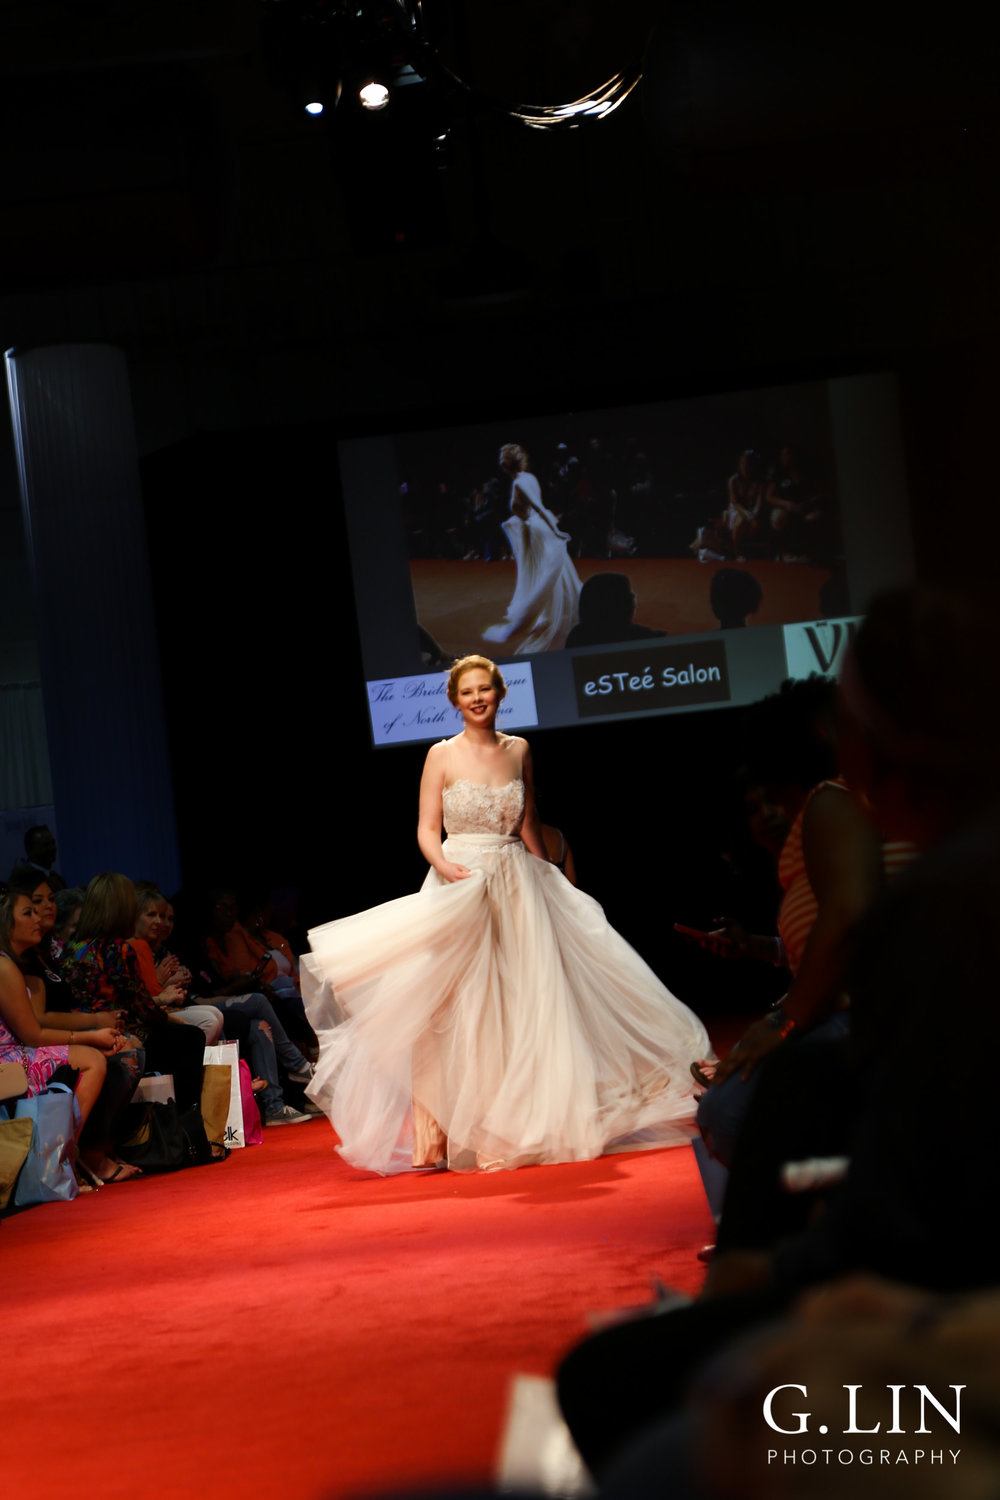 Raleigh Event Photographer | G. Lin Photography | Female model waving wedding dress during fashion show